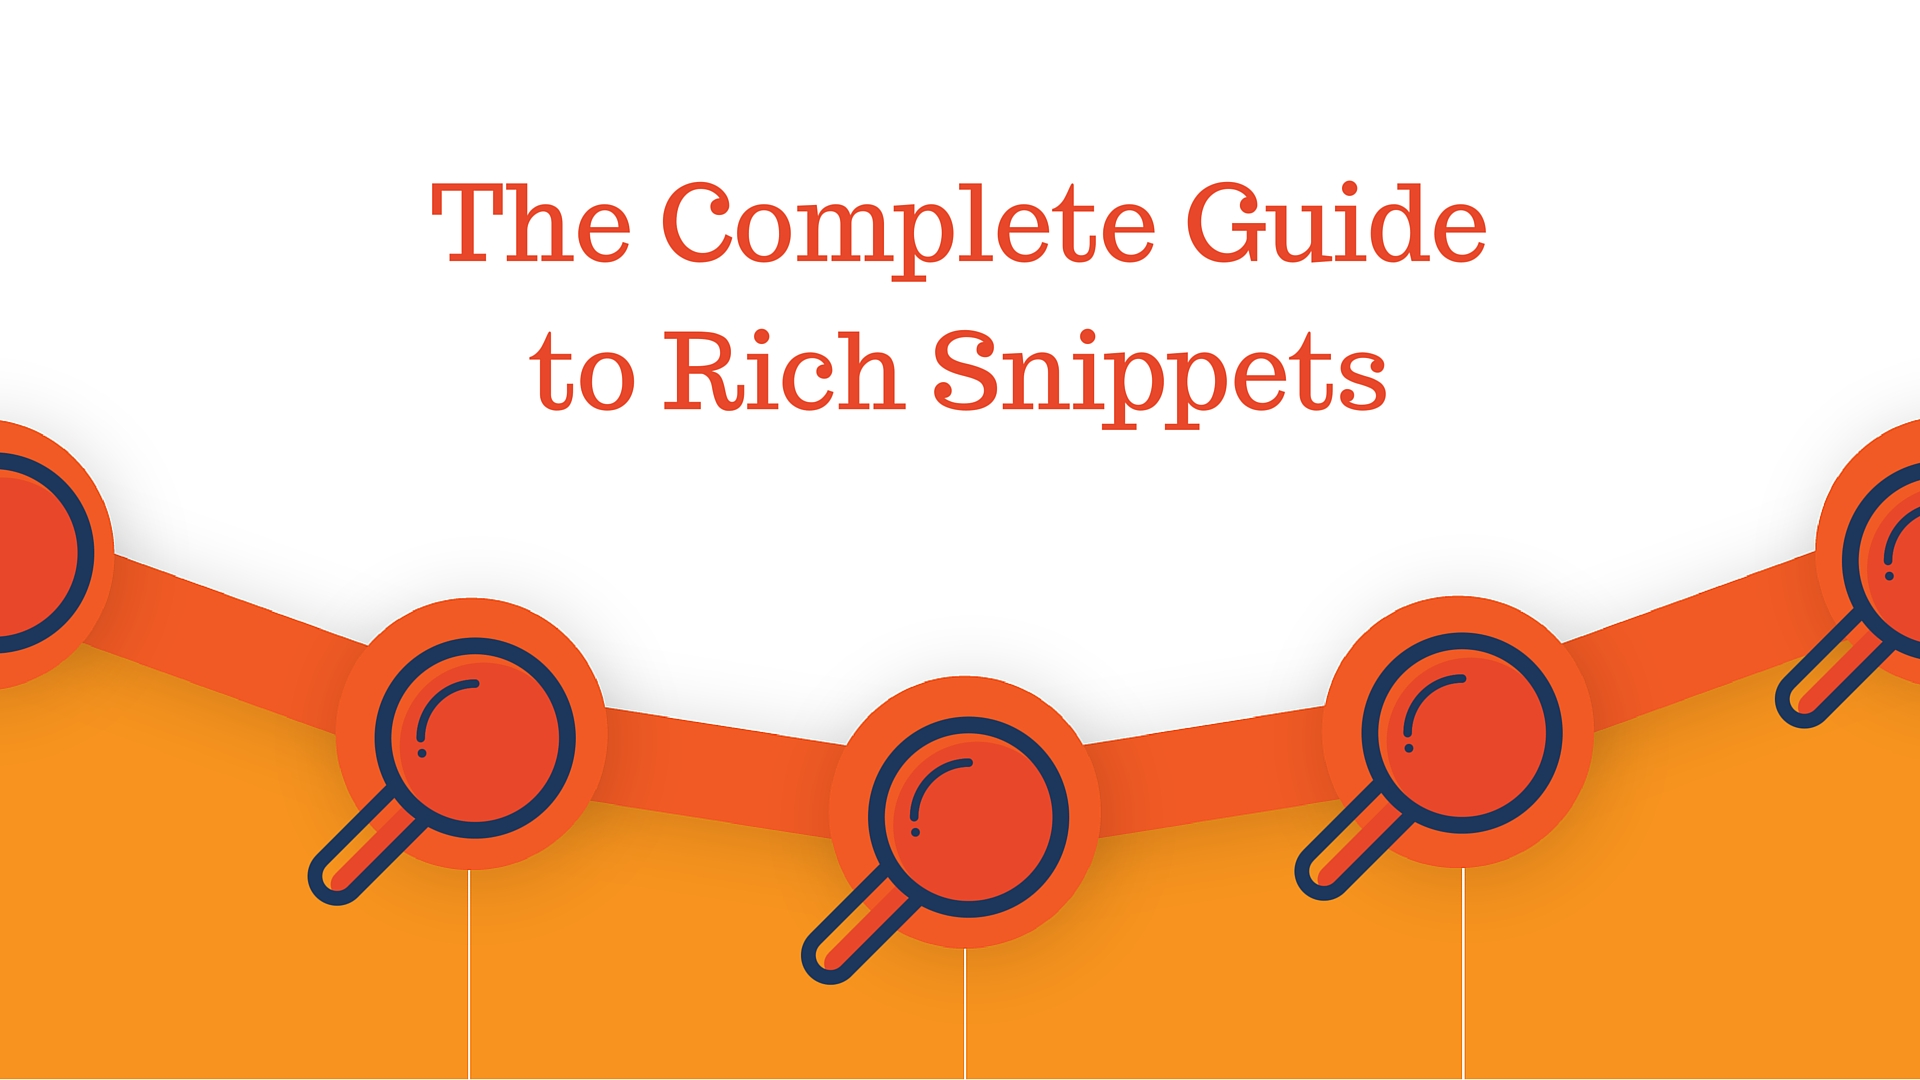 The Complete Guide to Rich Snippets